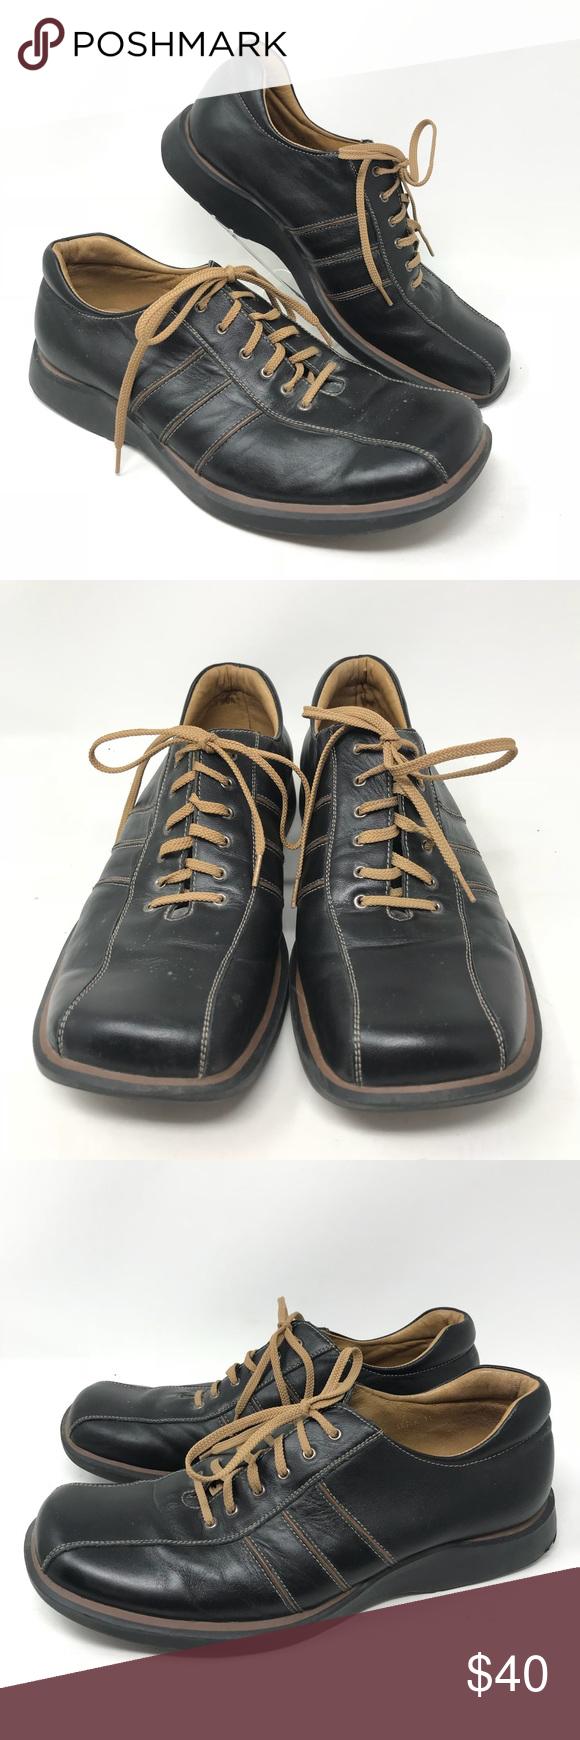 7ad3c4c3e7a Steve Madden Mens Charter 11 Shoes Steve Madden Mens Charter 11 Shoes Lace  Up Sneakers Black Brown Leather Great condition as shown Steve Madden Shoes  ...